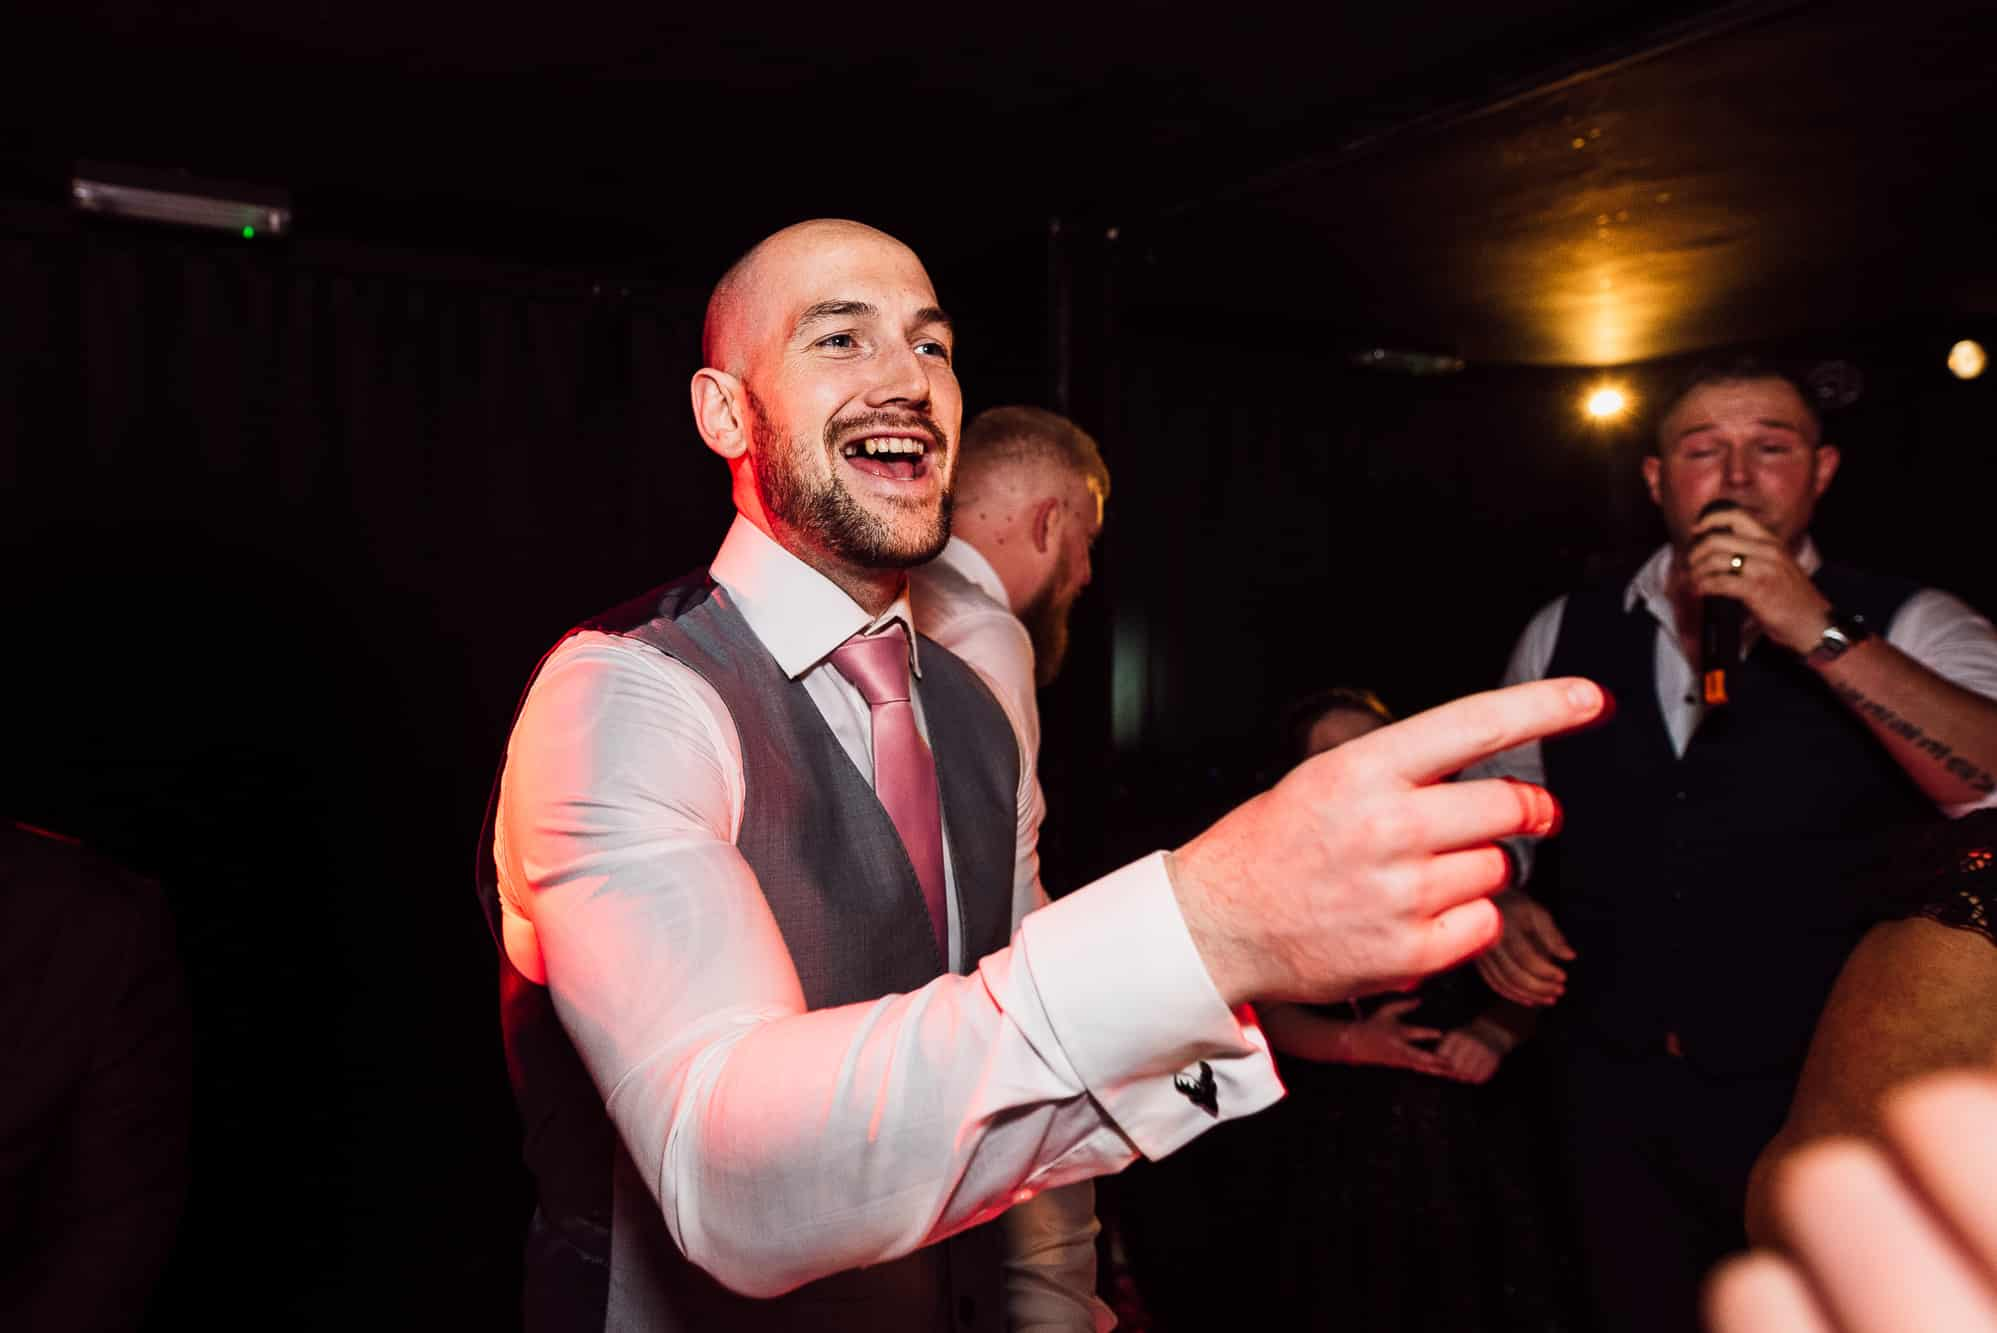 Groom dancing at Hilltop Country House